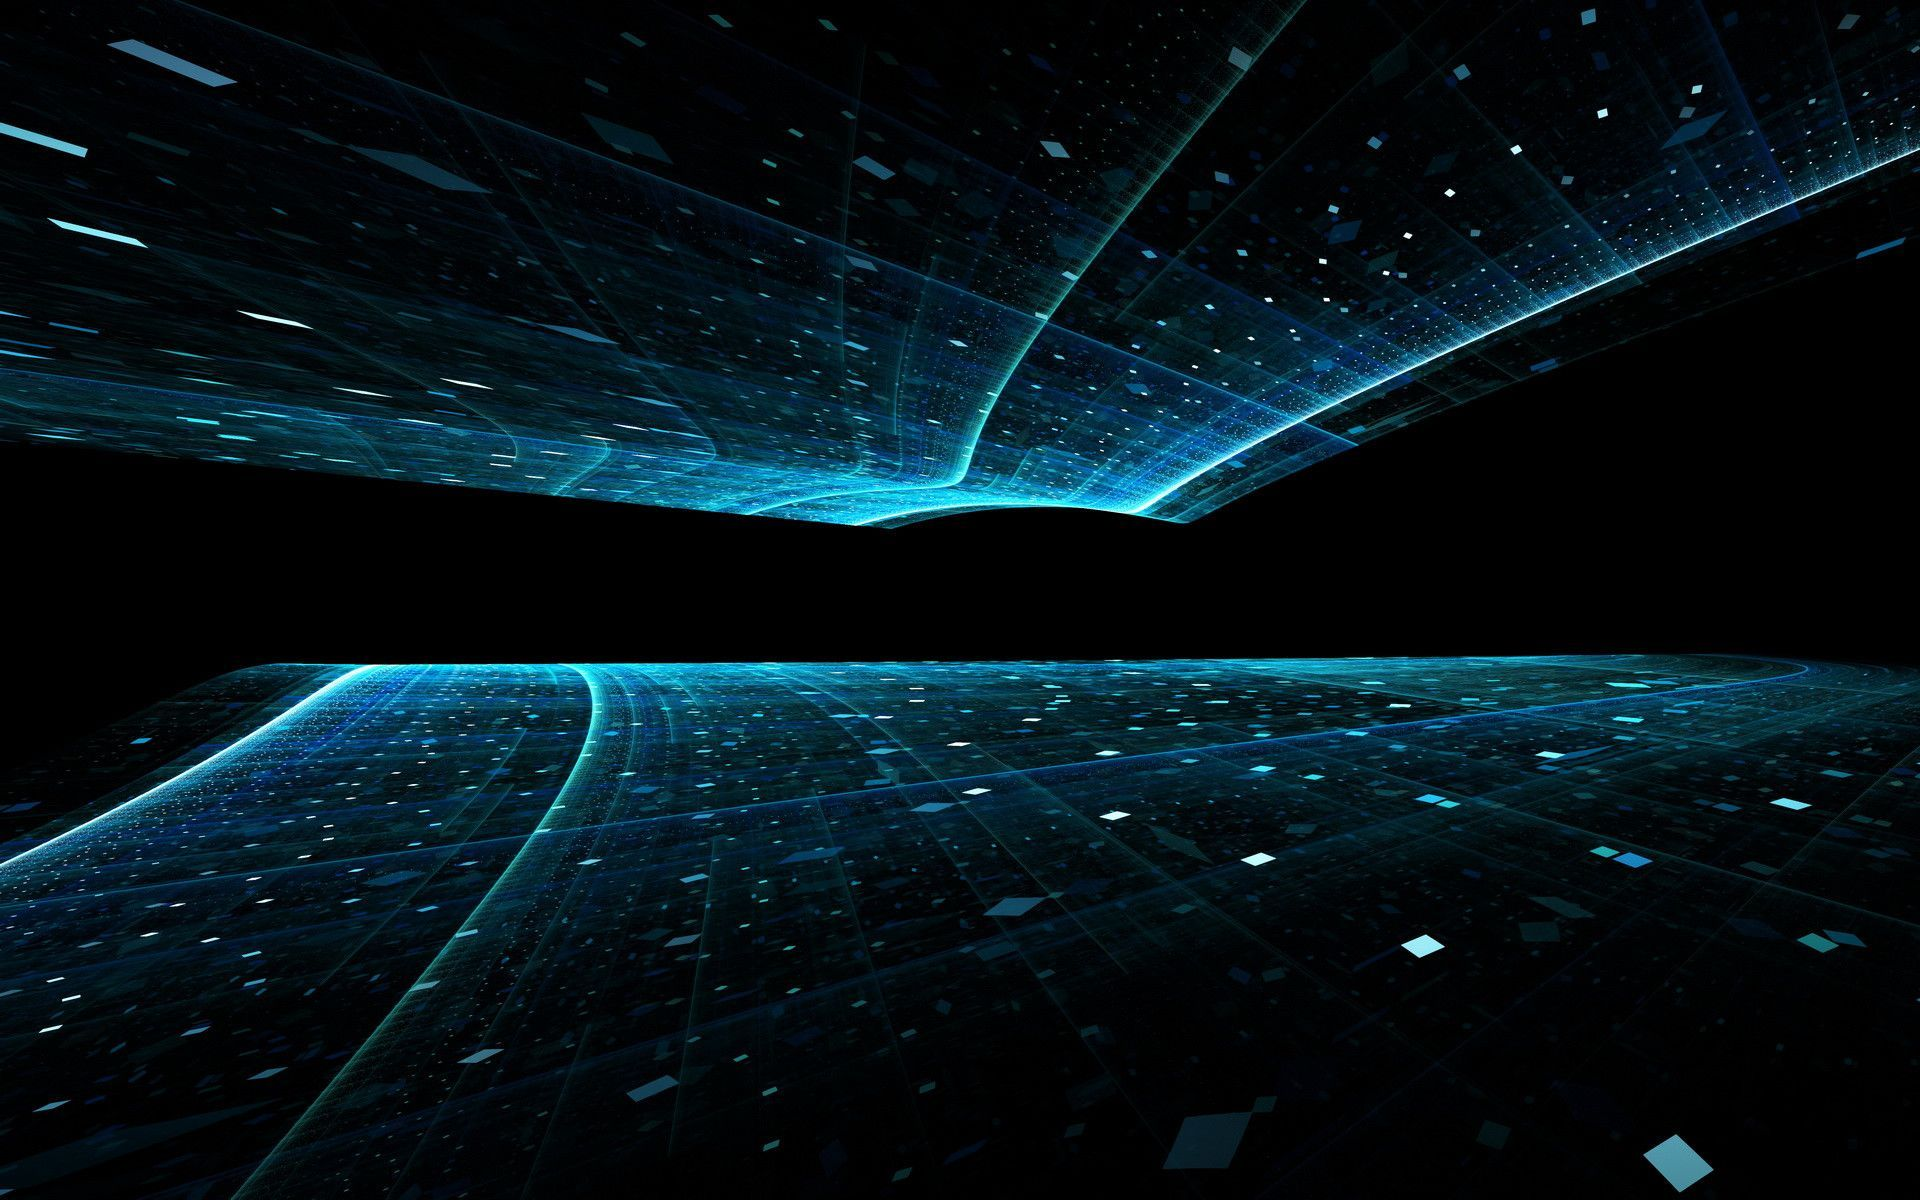 Futuristic Desktop Wallpapers - Wallpaper Cave